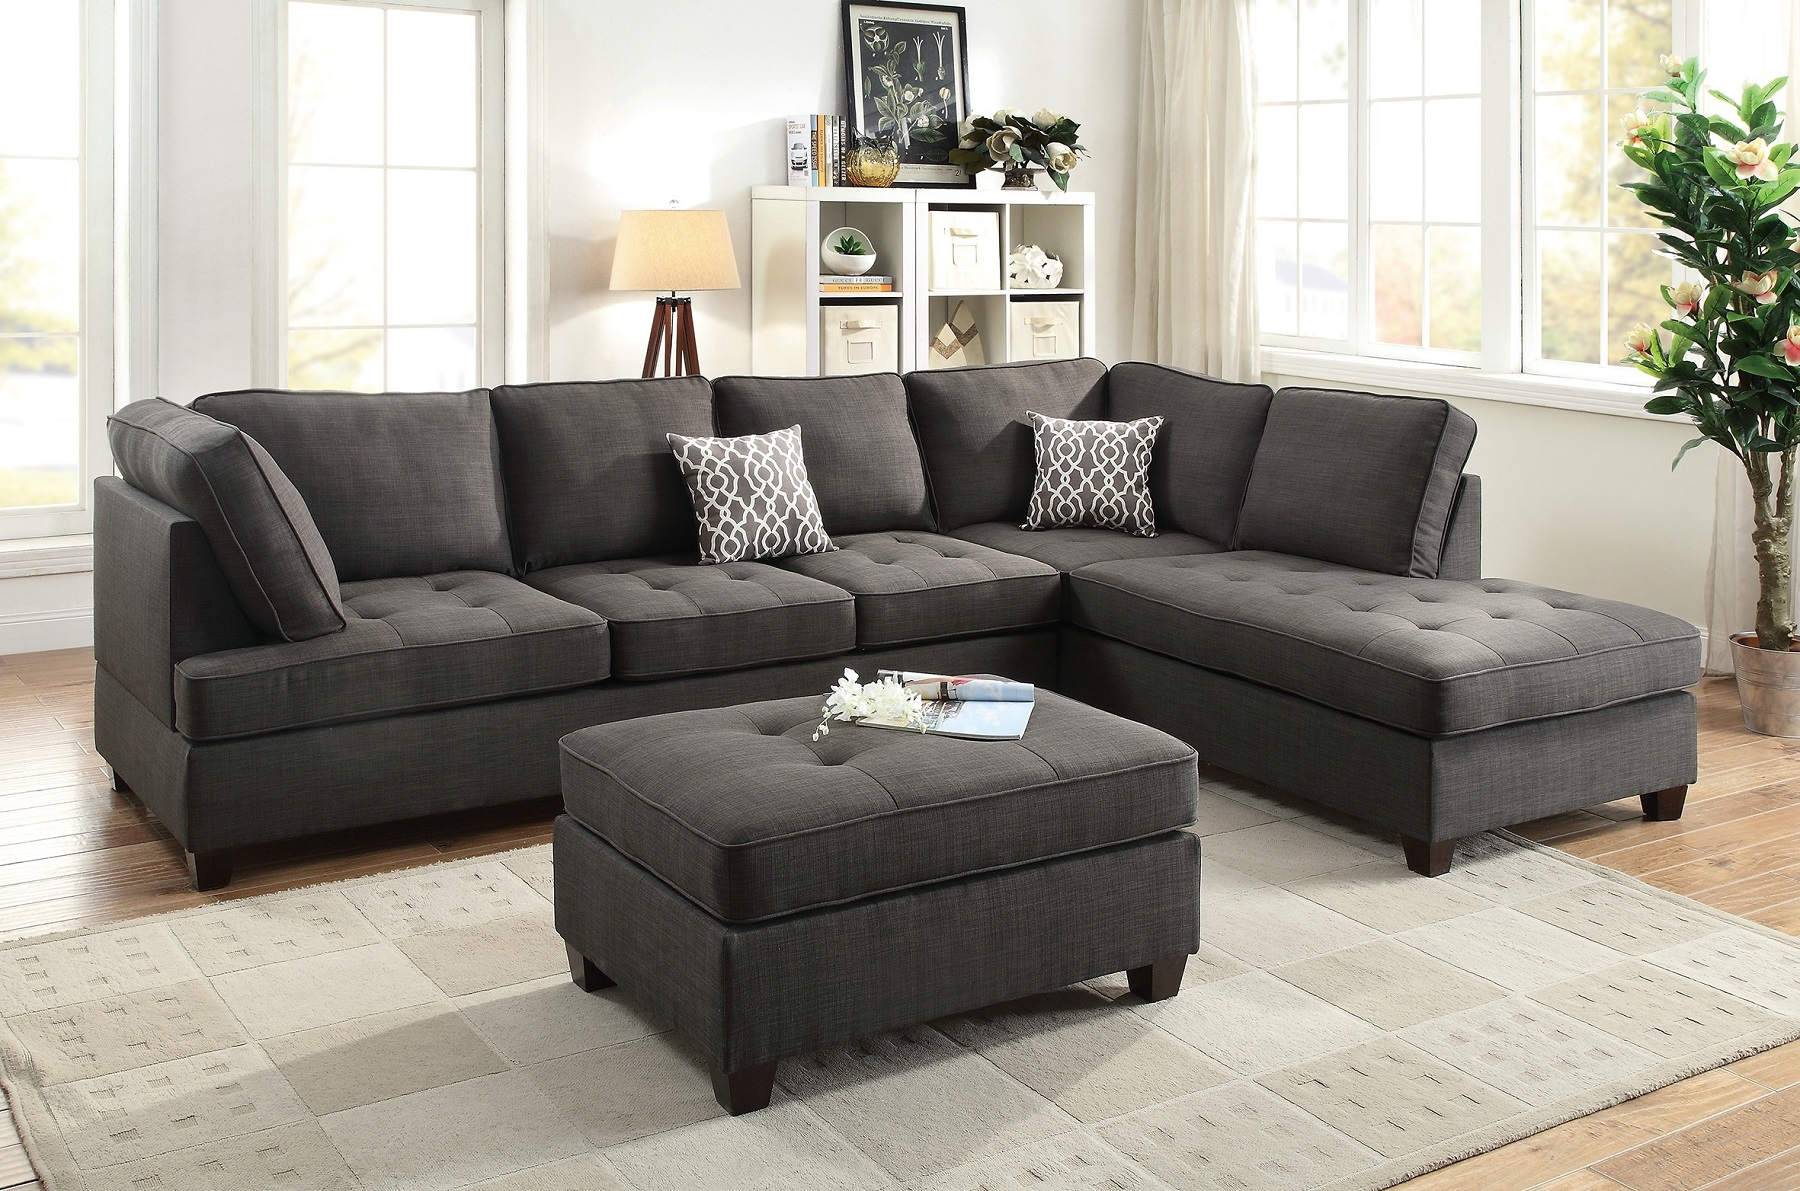 Black sectional sofa chaise poundex f6988 hot sectionals for Black sectional with chaise